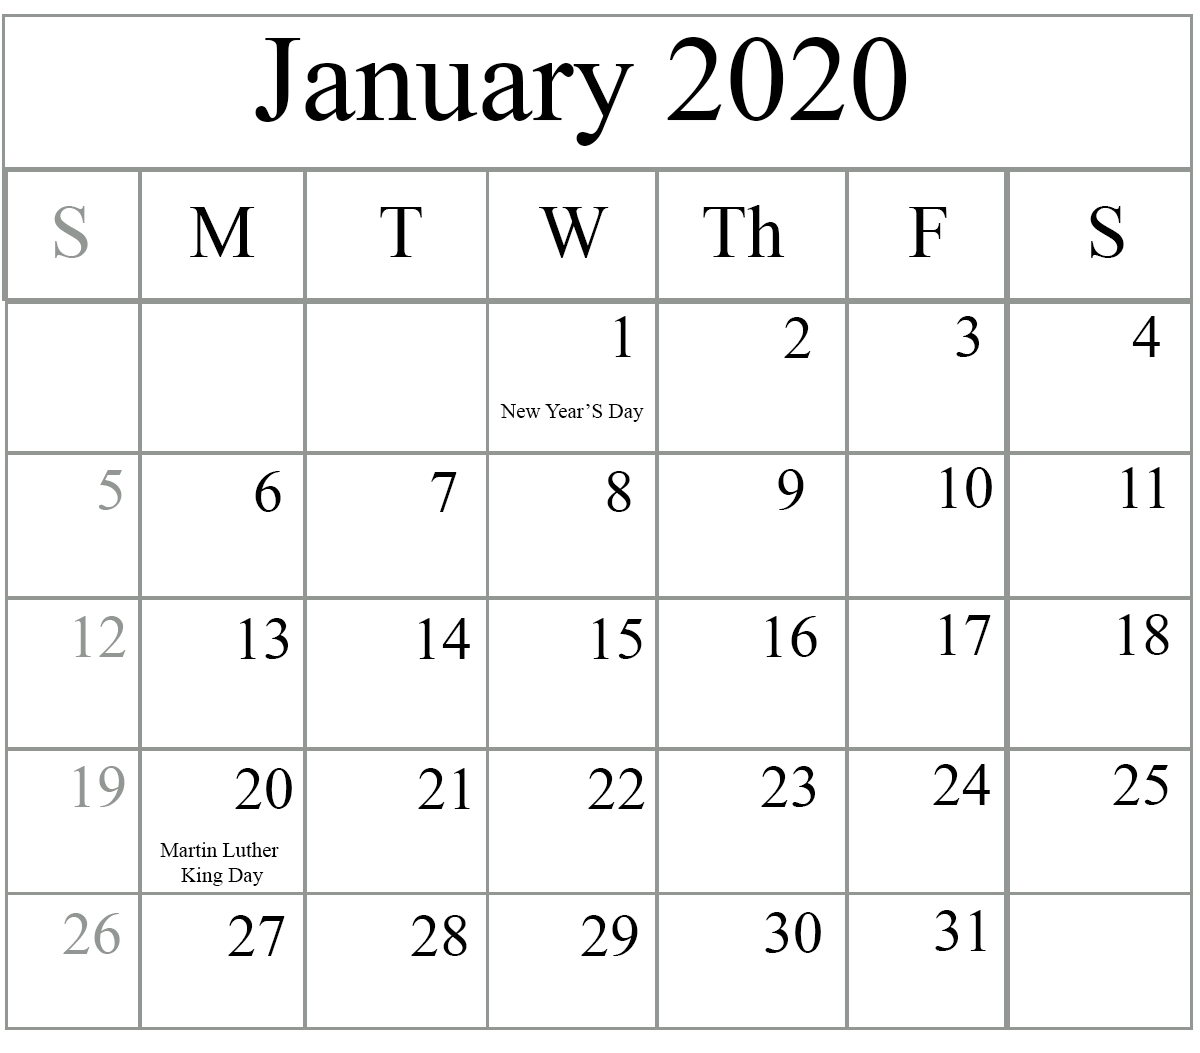 Free January 2020 Printable Calendar In Pdf, Excel & Word-January 2020 Calendar Free